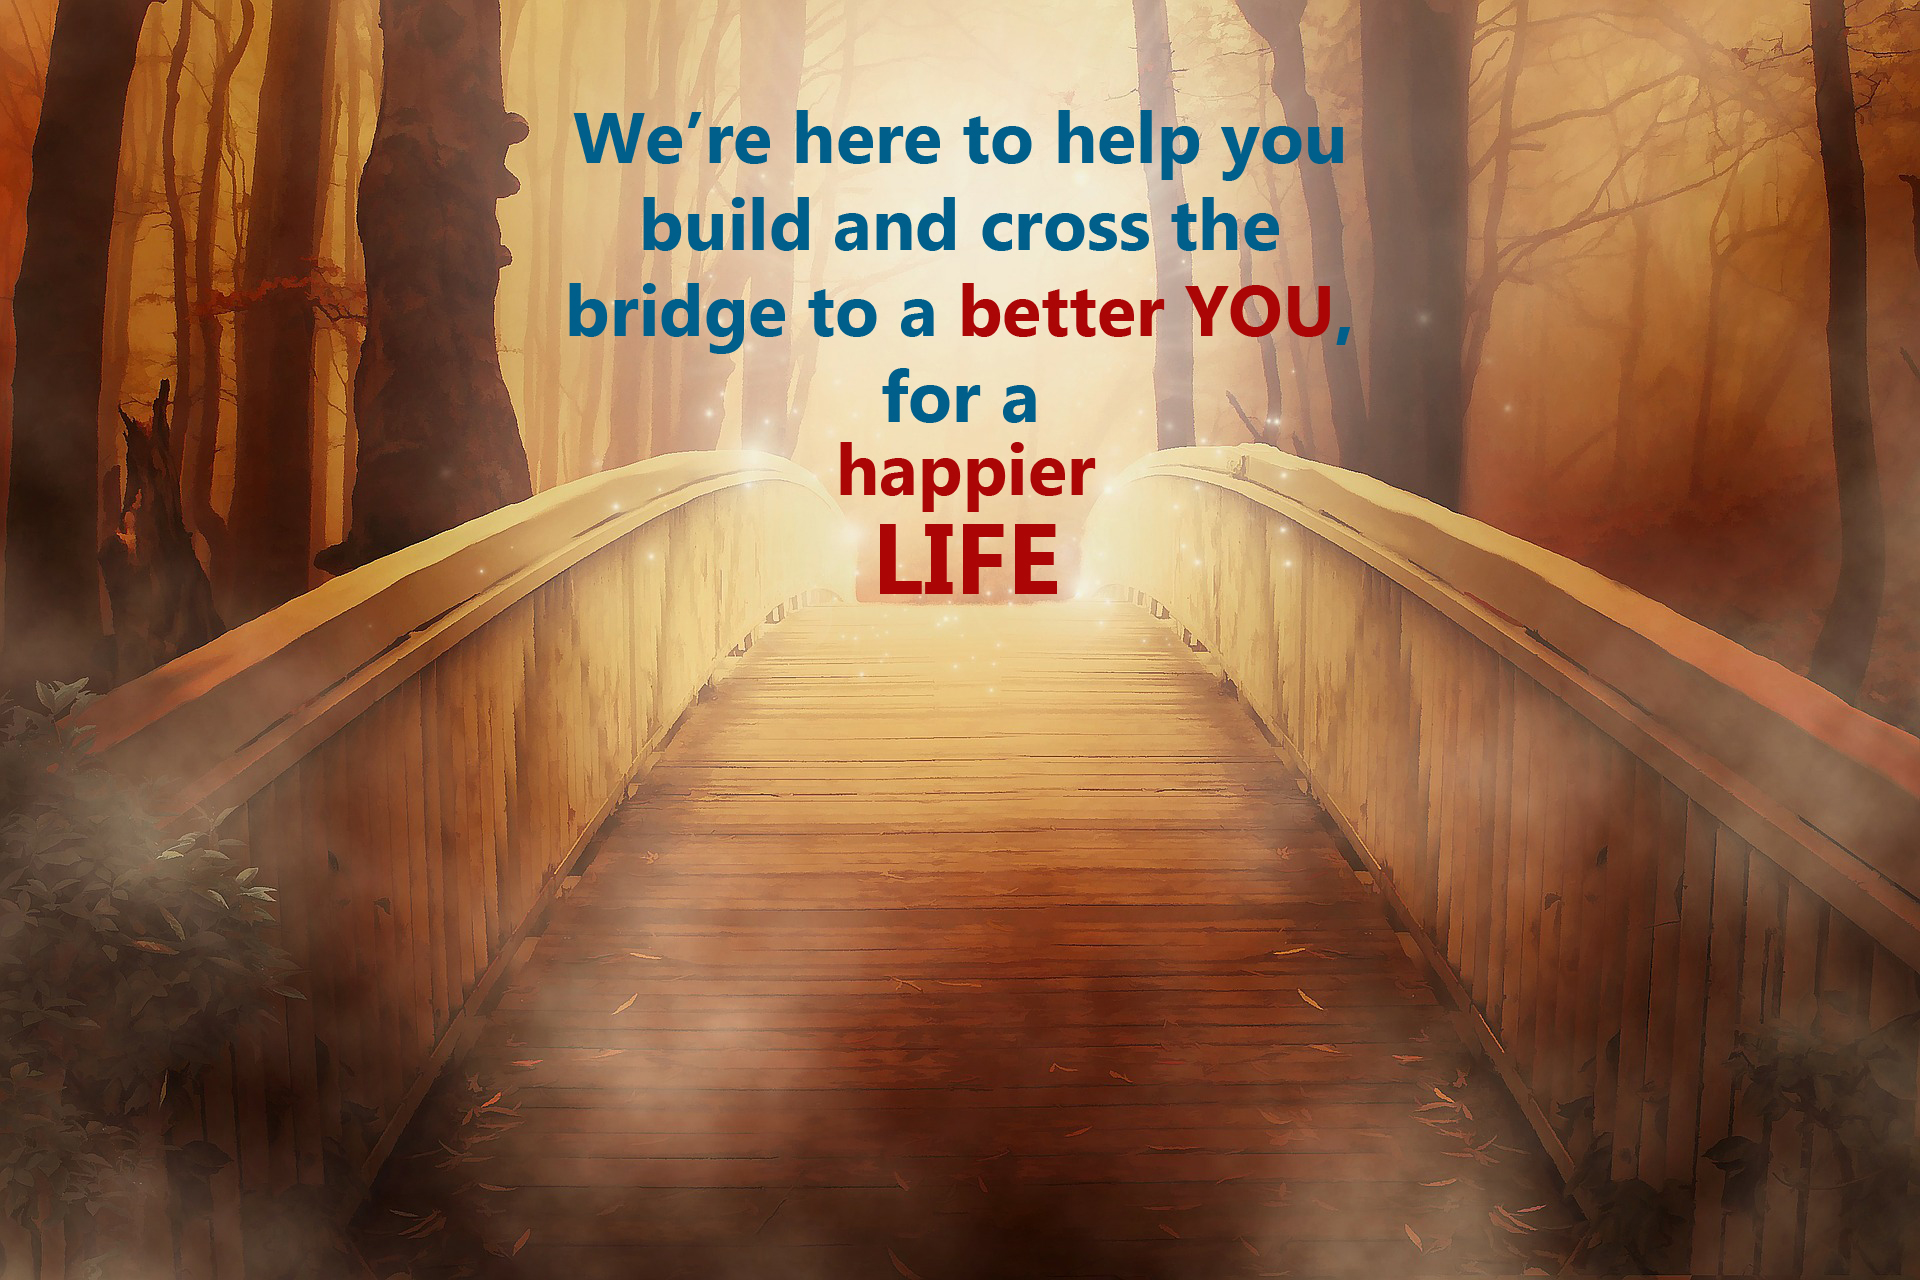 Helping with addiction therapy in Las Vegas. Couple and family counseling is available. Call 7023203180 to schedule a private consultation